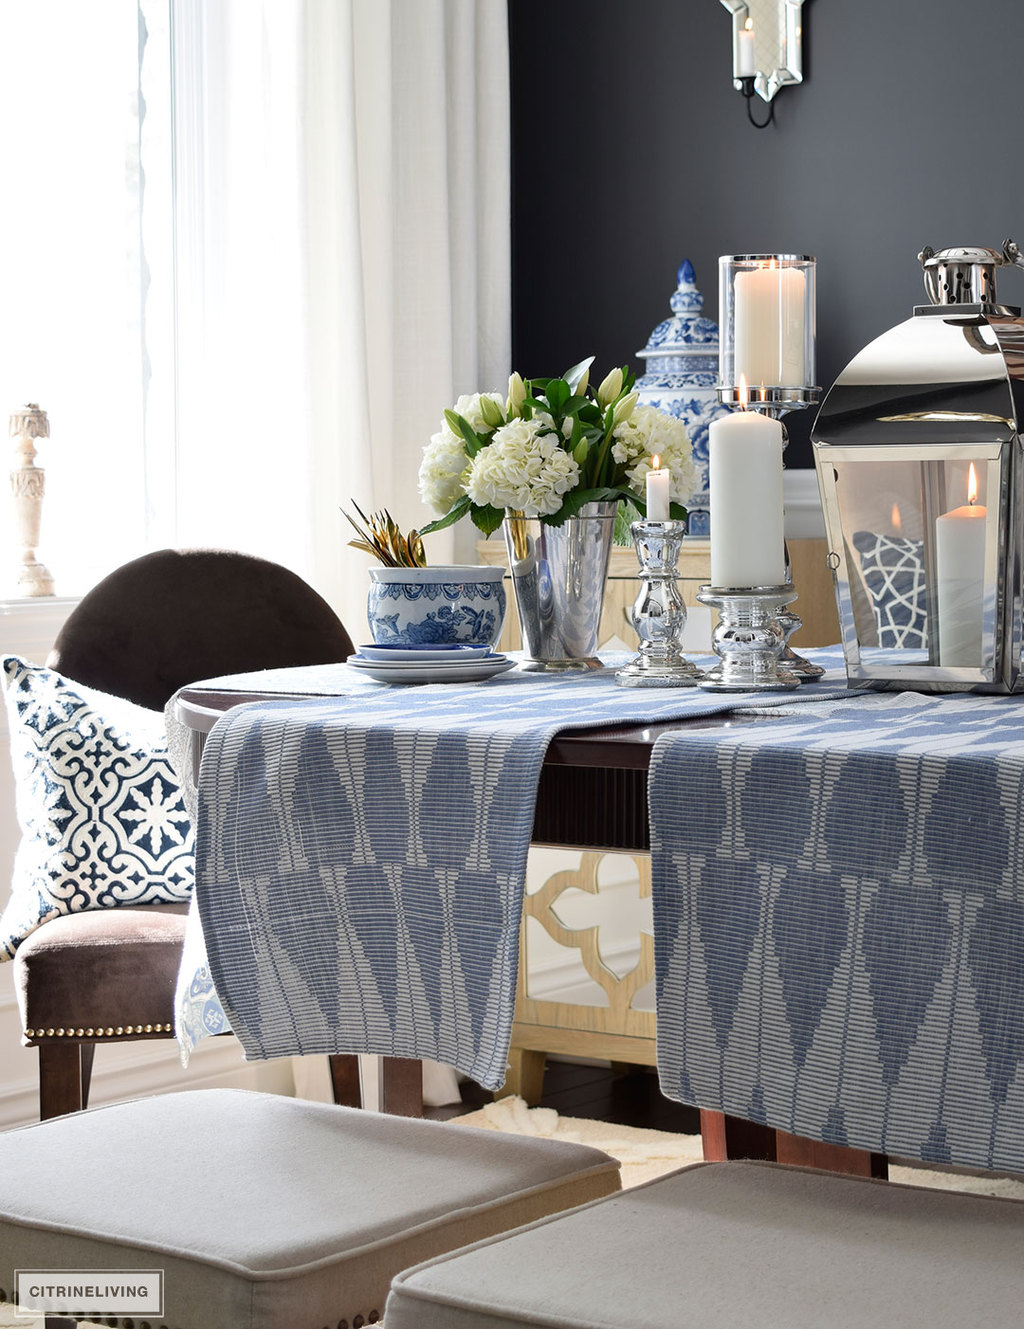 Beautiful Spring table decor - a fresh mix of blue and white pattern and texture is perfect for the season.